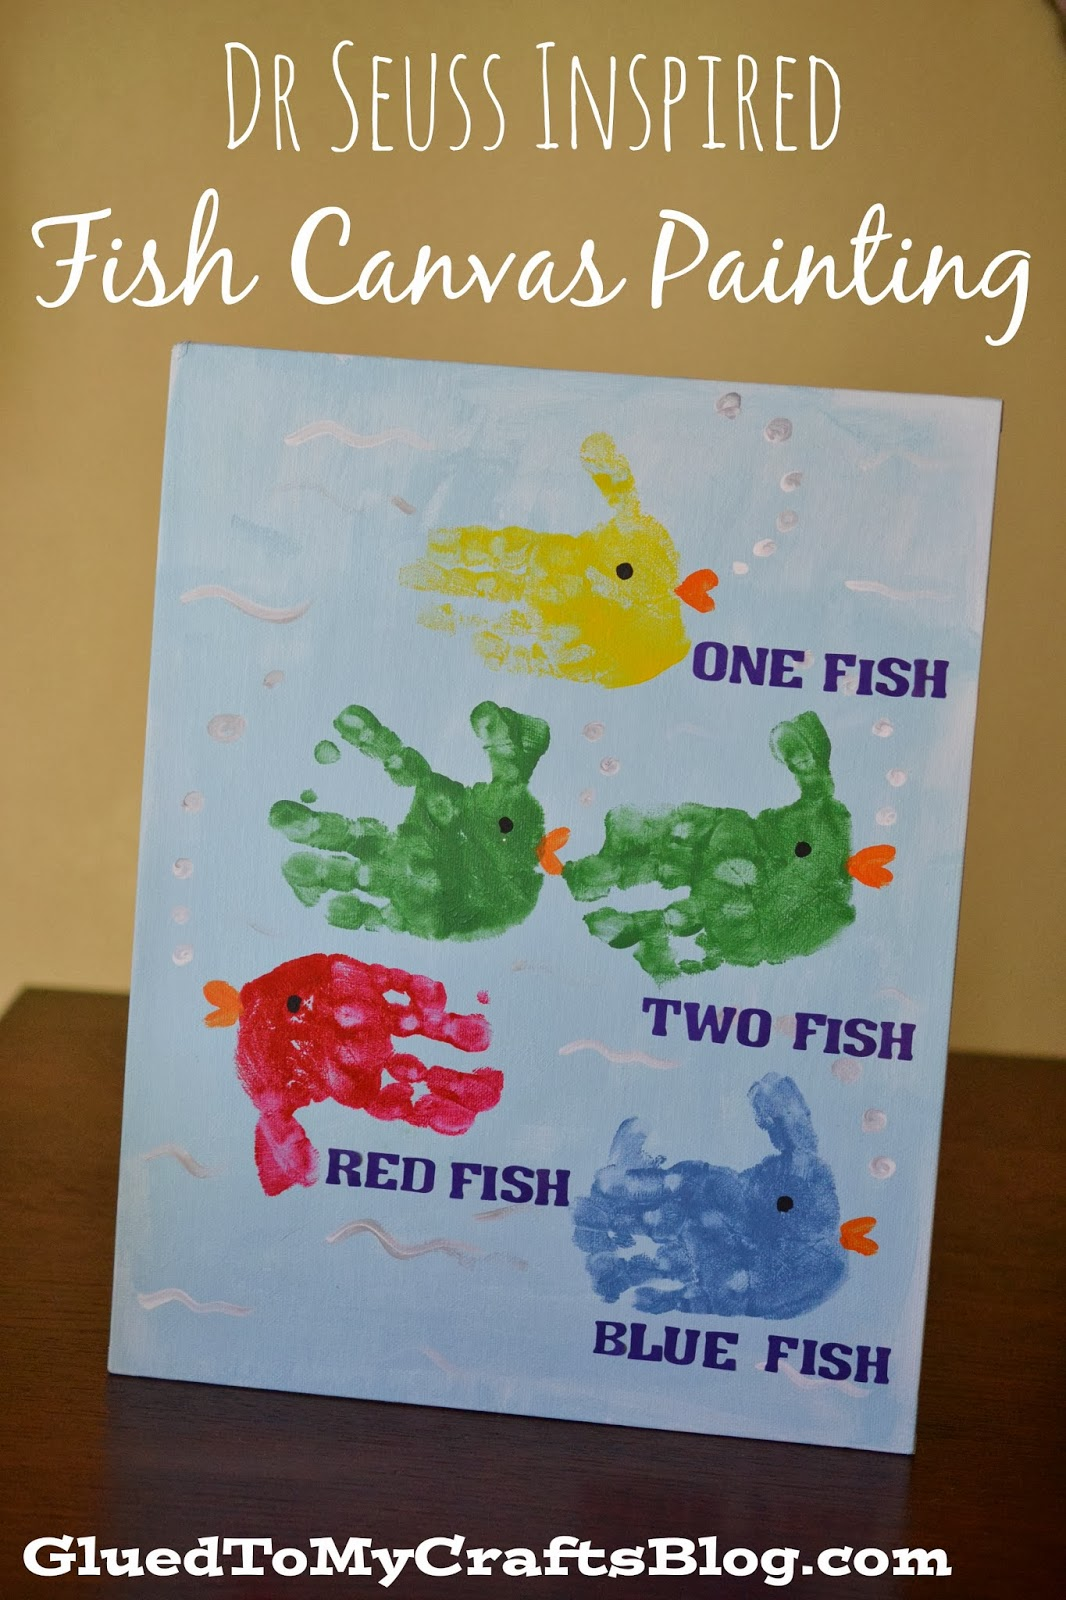 Dr. Seuss Inspired Fish Canvas Painting Kid Craft from Glued to my Crafts